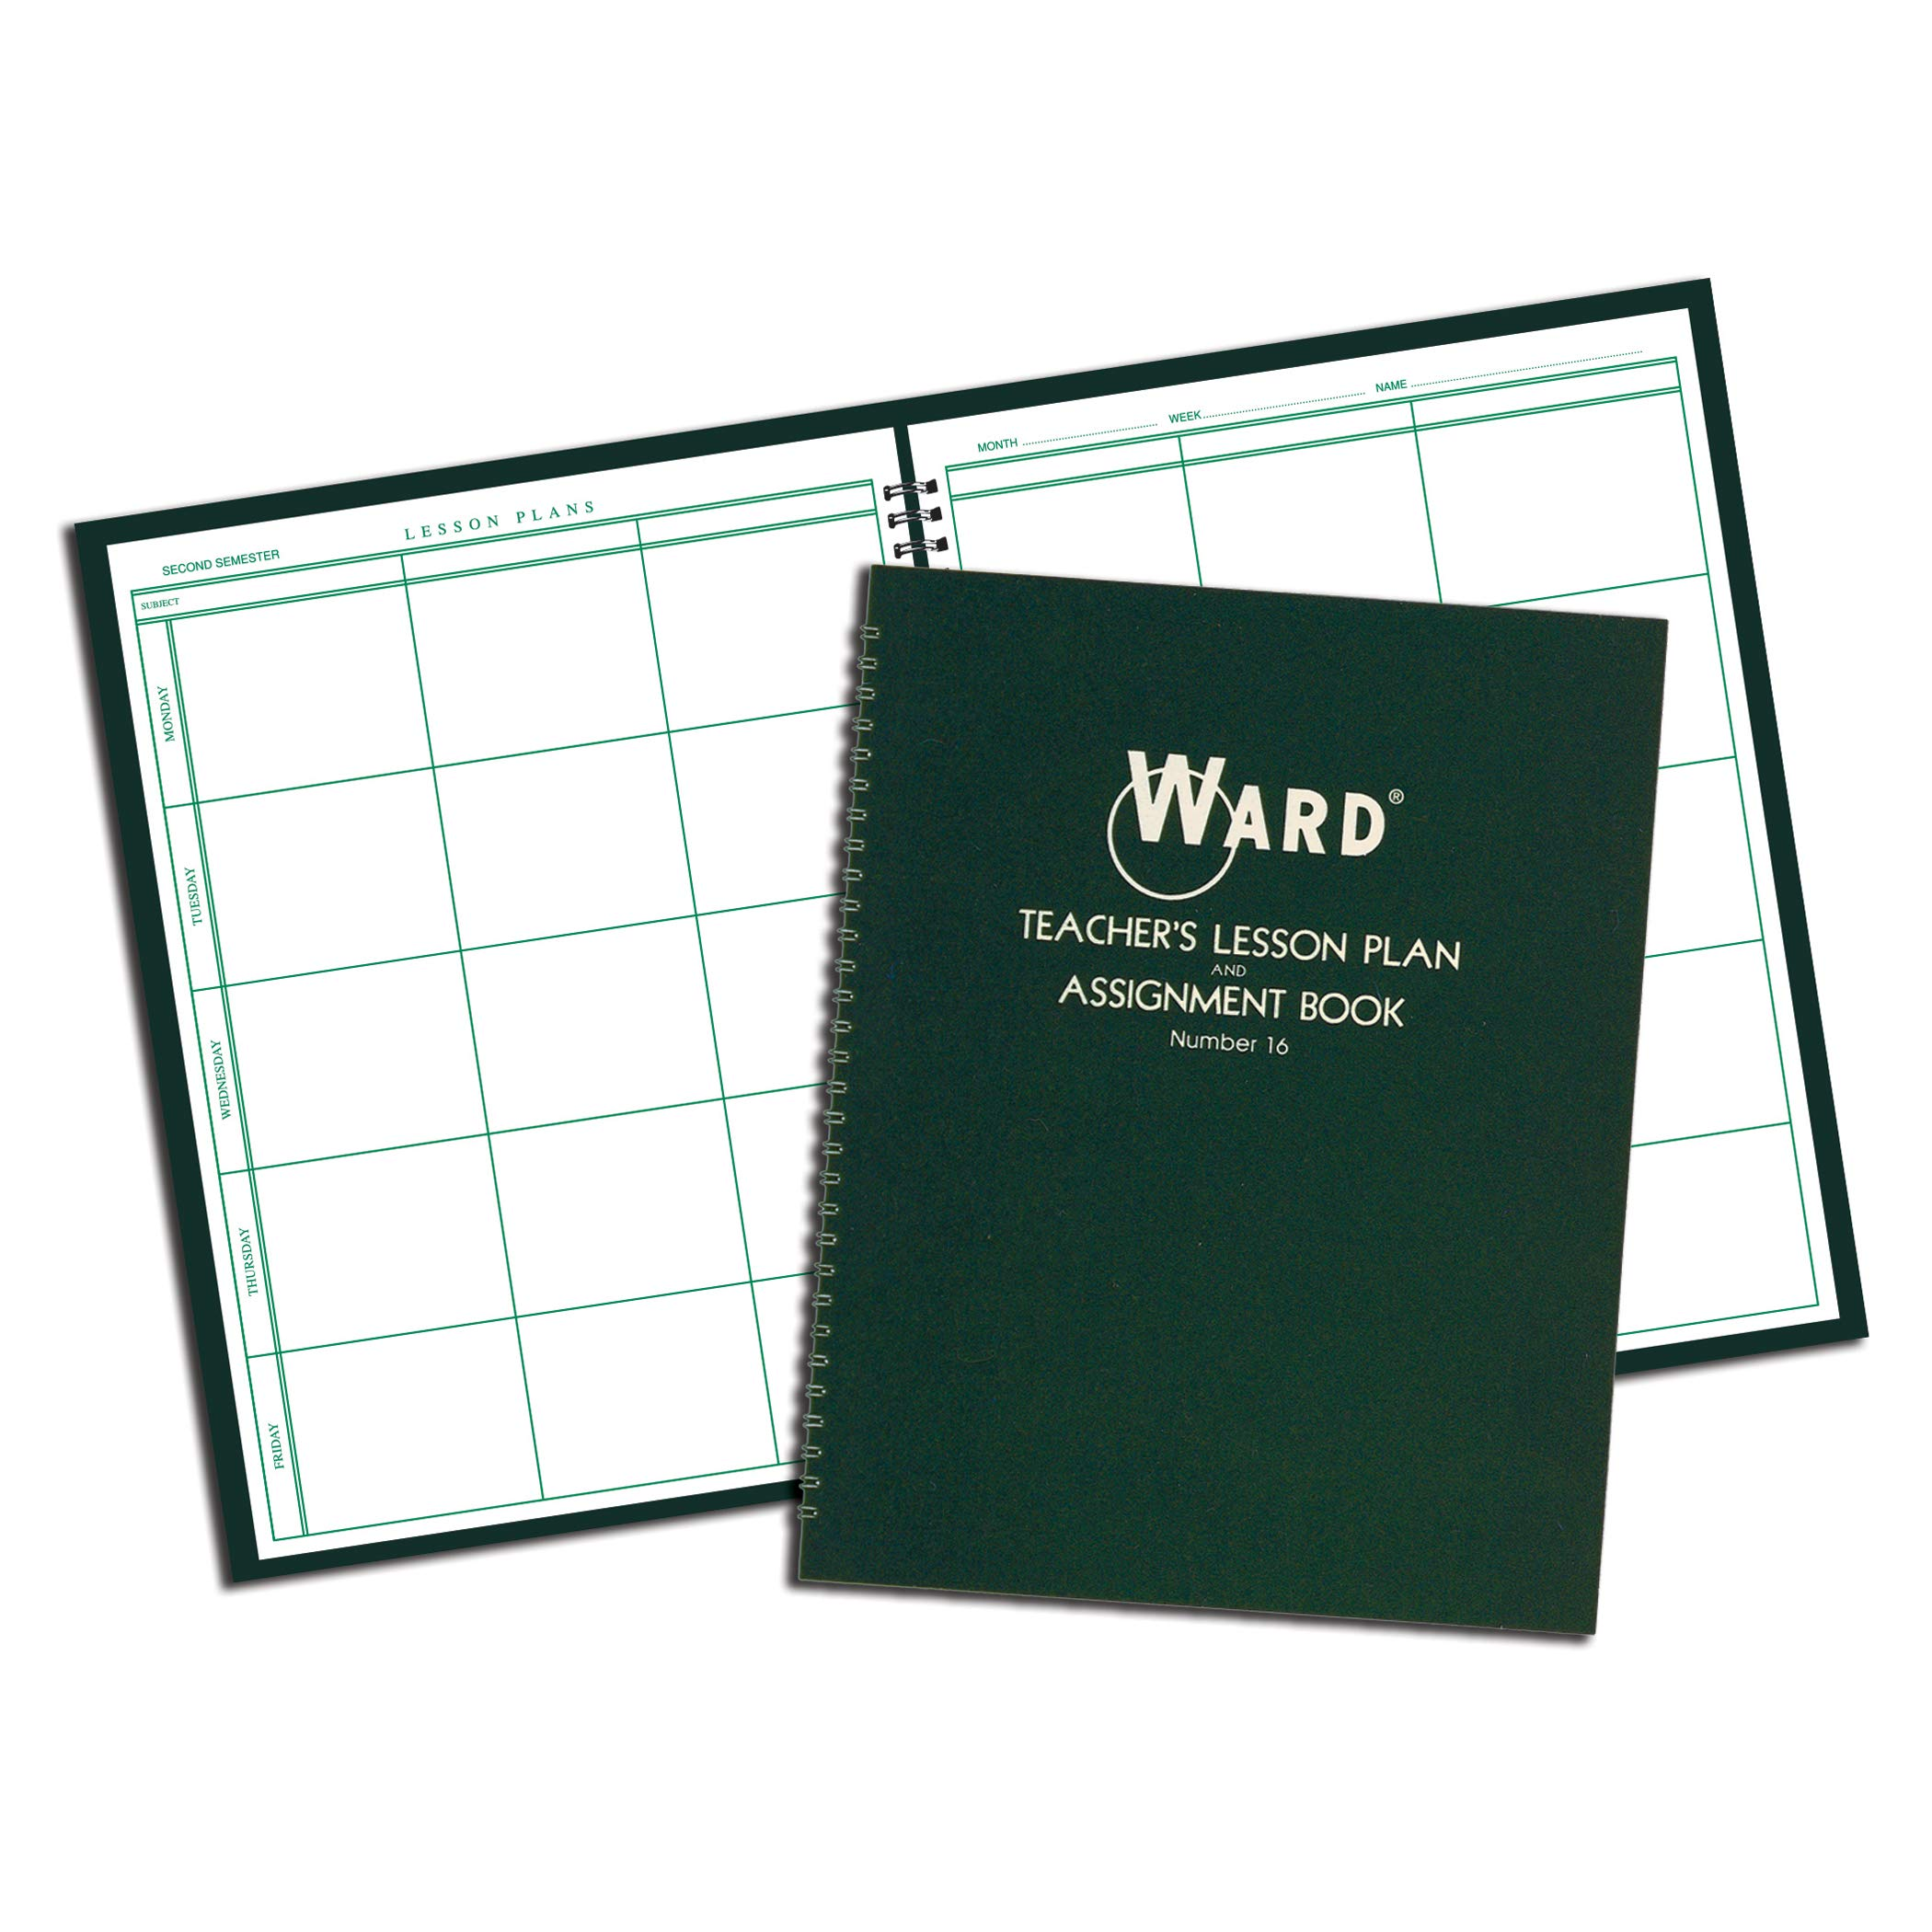 Ward WAR16BN Teacher's Lesson Plan and Assignment Book, 6 Period Regular, Green, Pack of 4